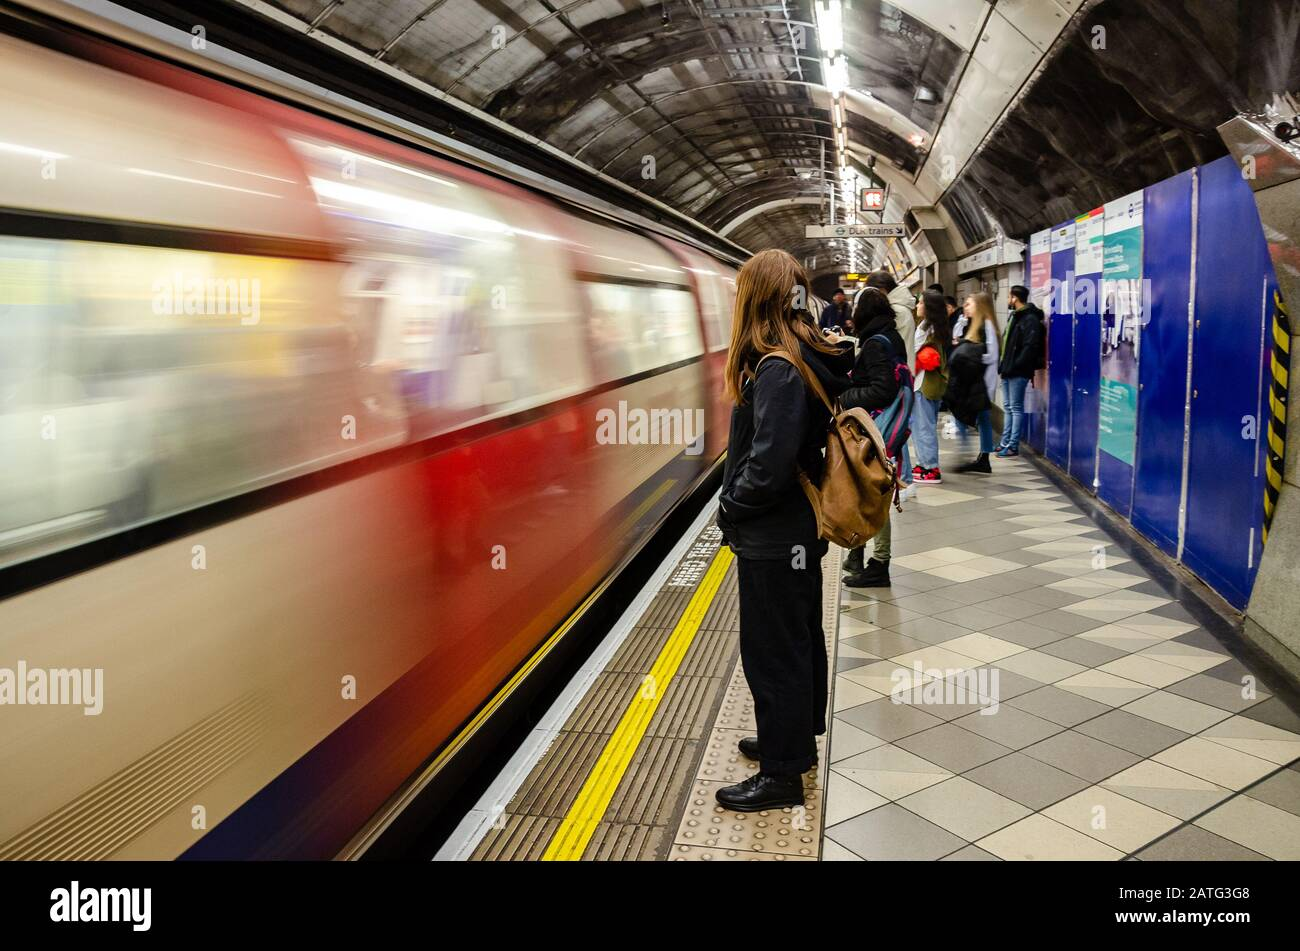 passengers-stand-and-wait-on-the-platform-as-a-london-underground-train-pulls-into-the-platform-at-bank-station-2ATG3G8.jpg